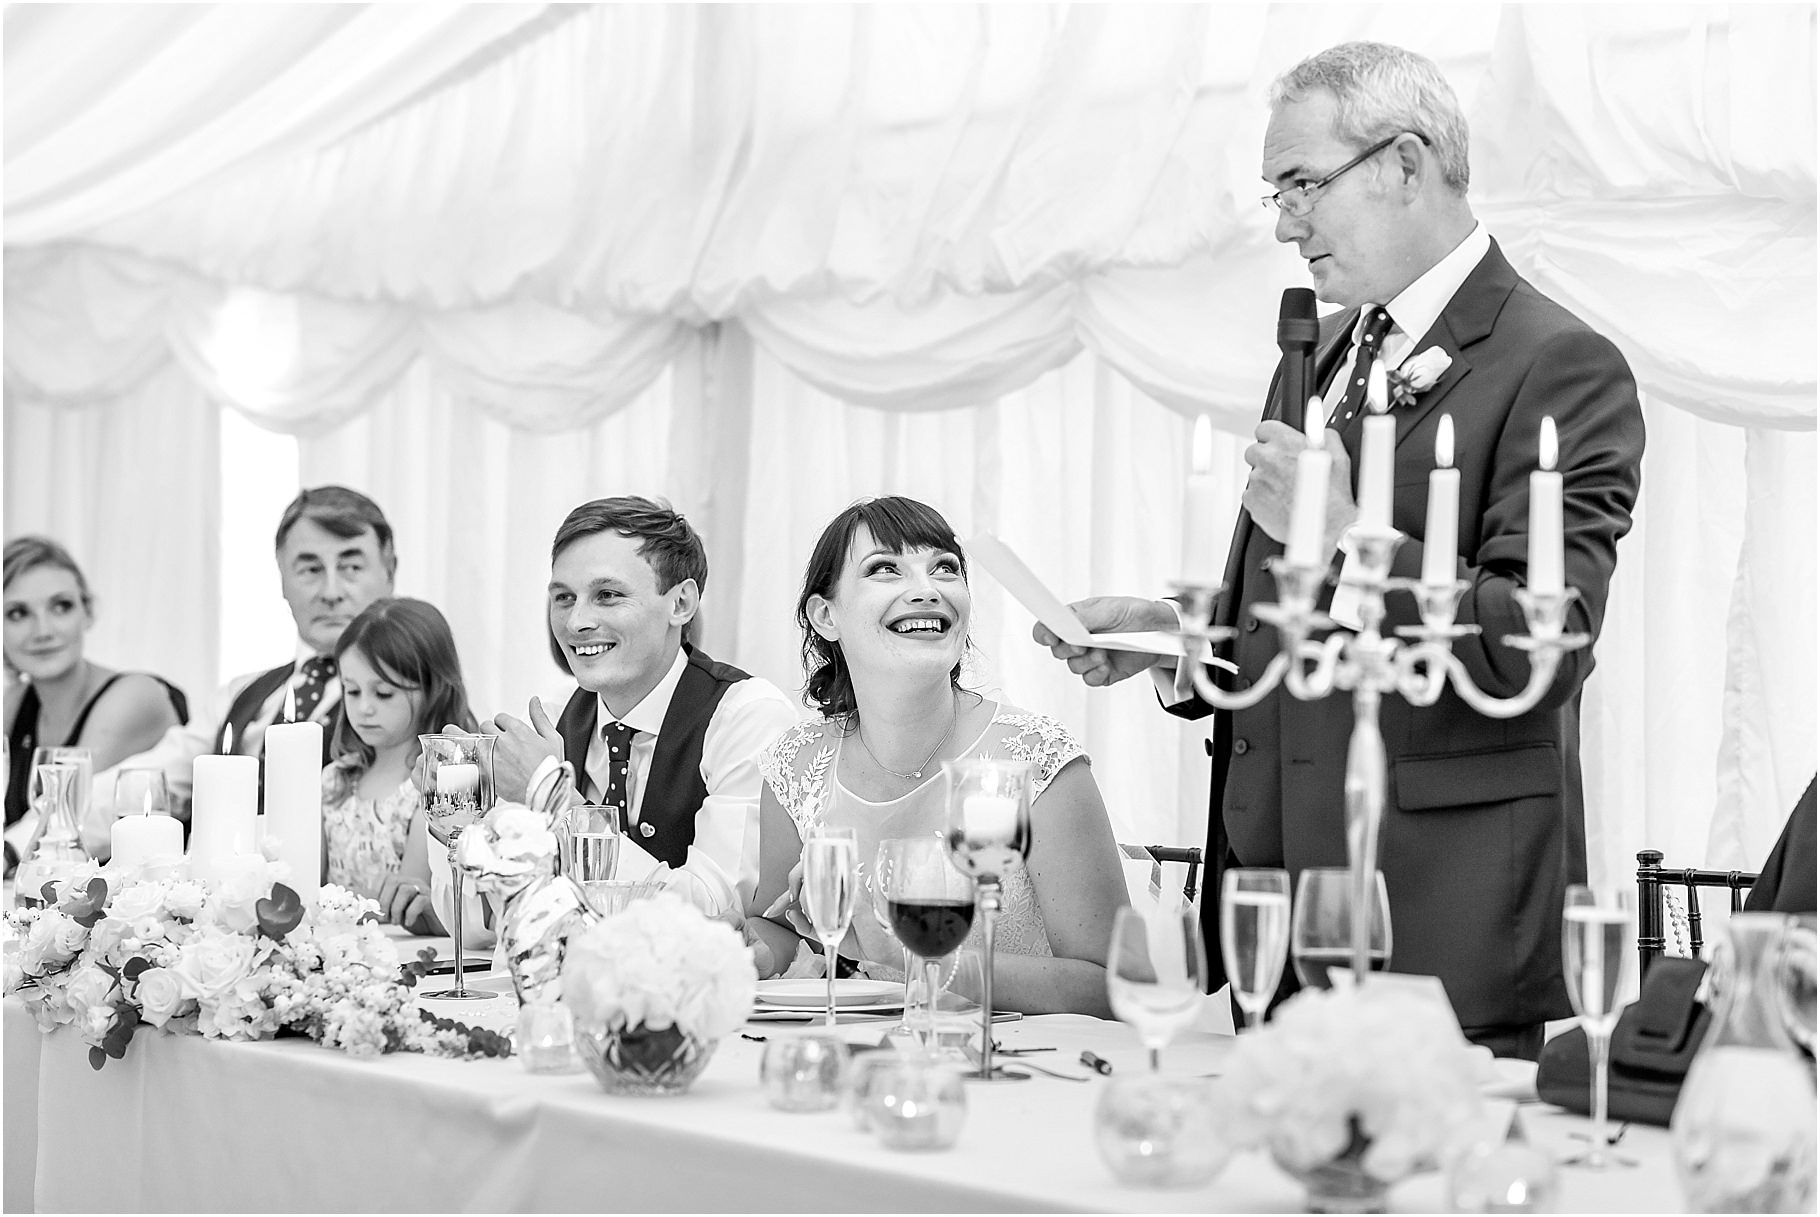 downham-village-wedding-104.jpg